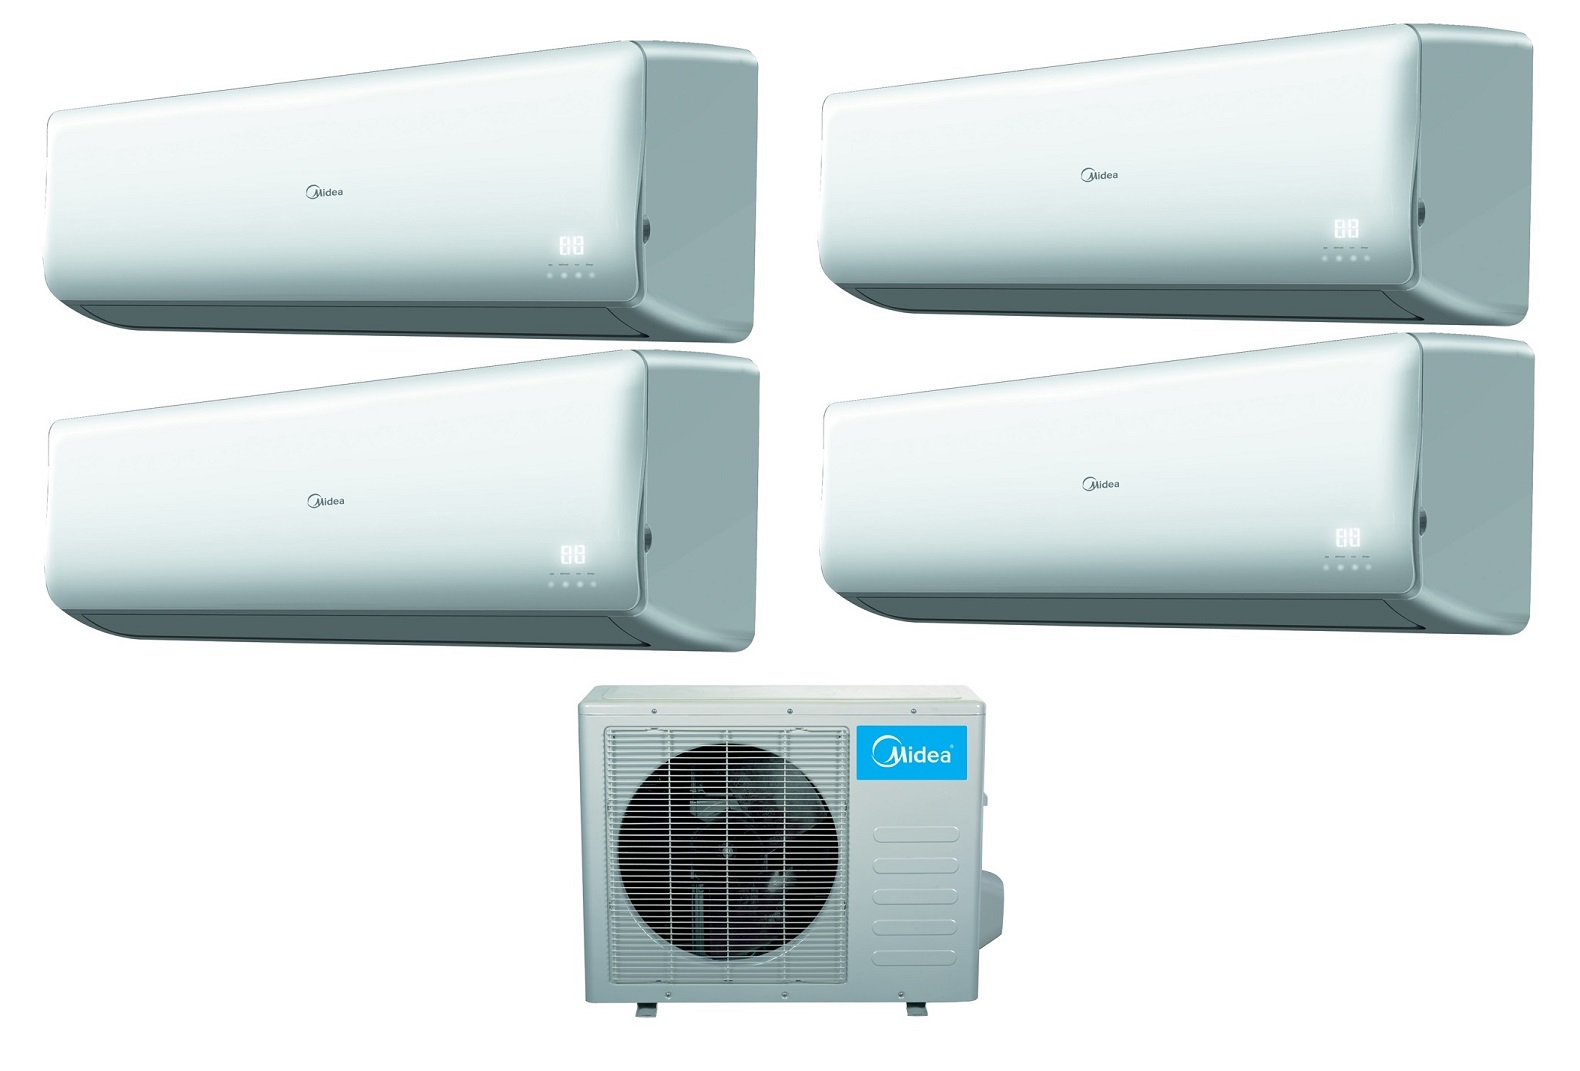 Midea 16 Seer 4 Room 4x9000btu Quad Zone Mini Split Heat Pump AC #0090CC